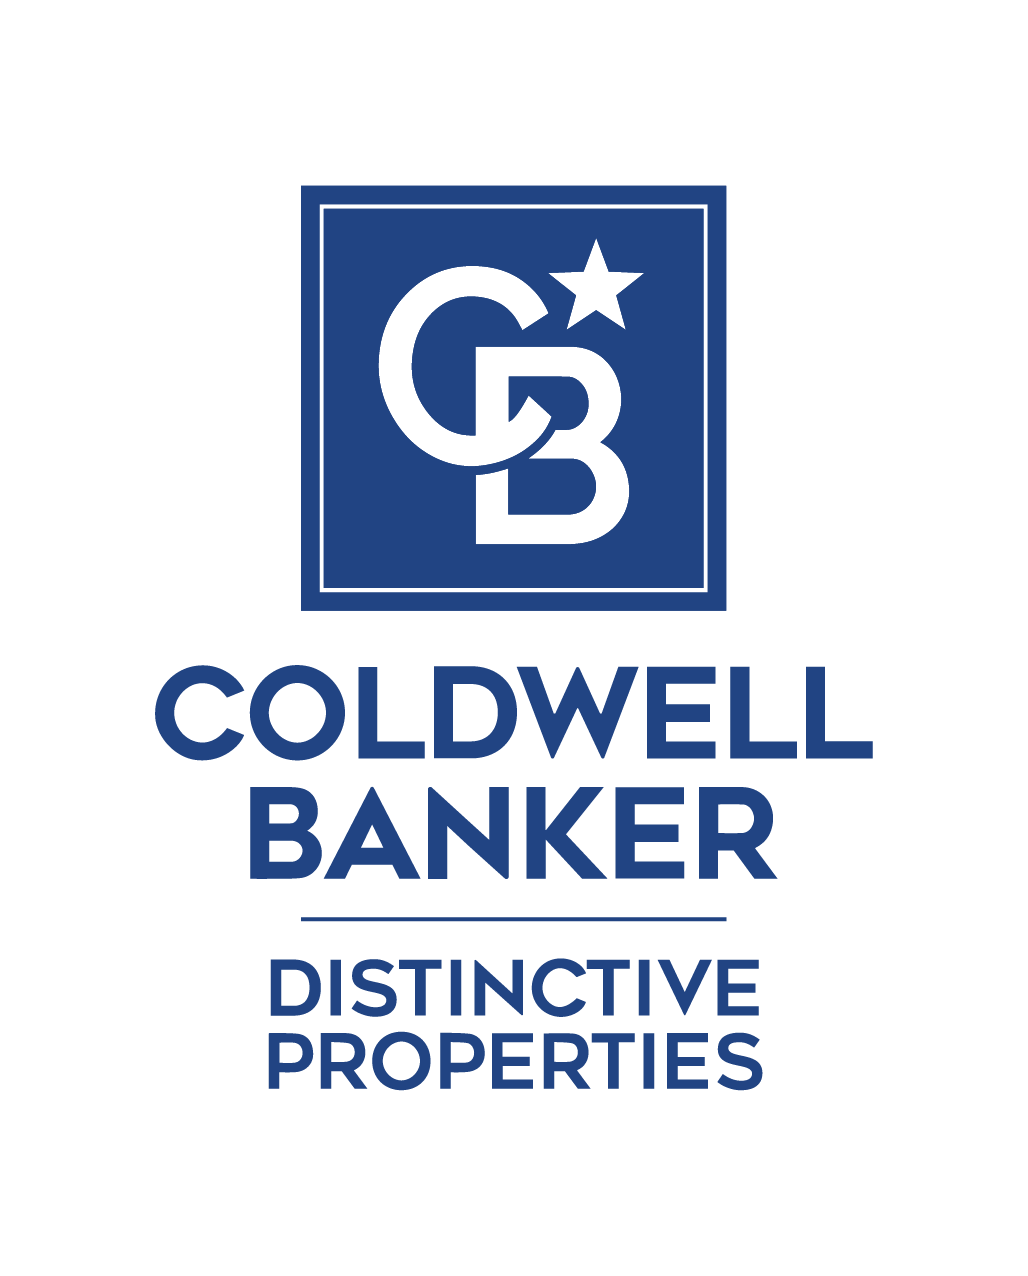 Sarah O'Neil - Coldwell Banker Distinctive Properties Logo